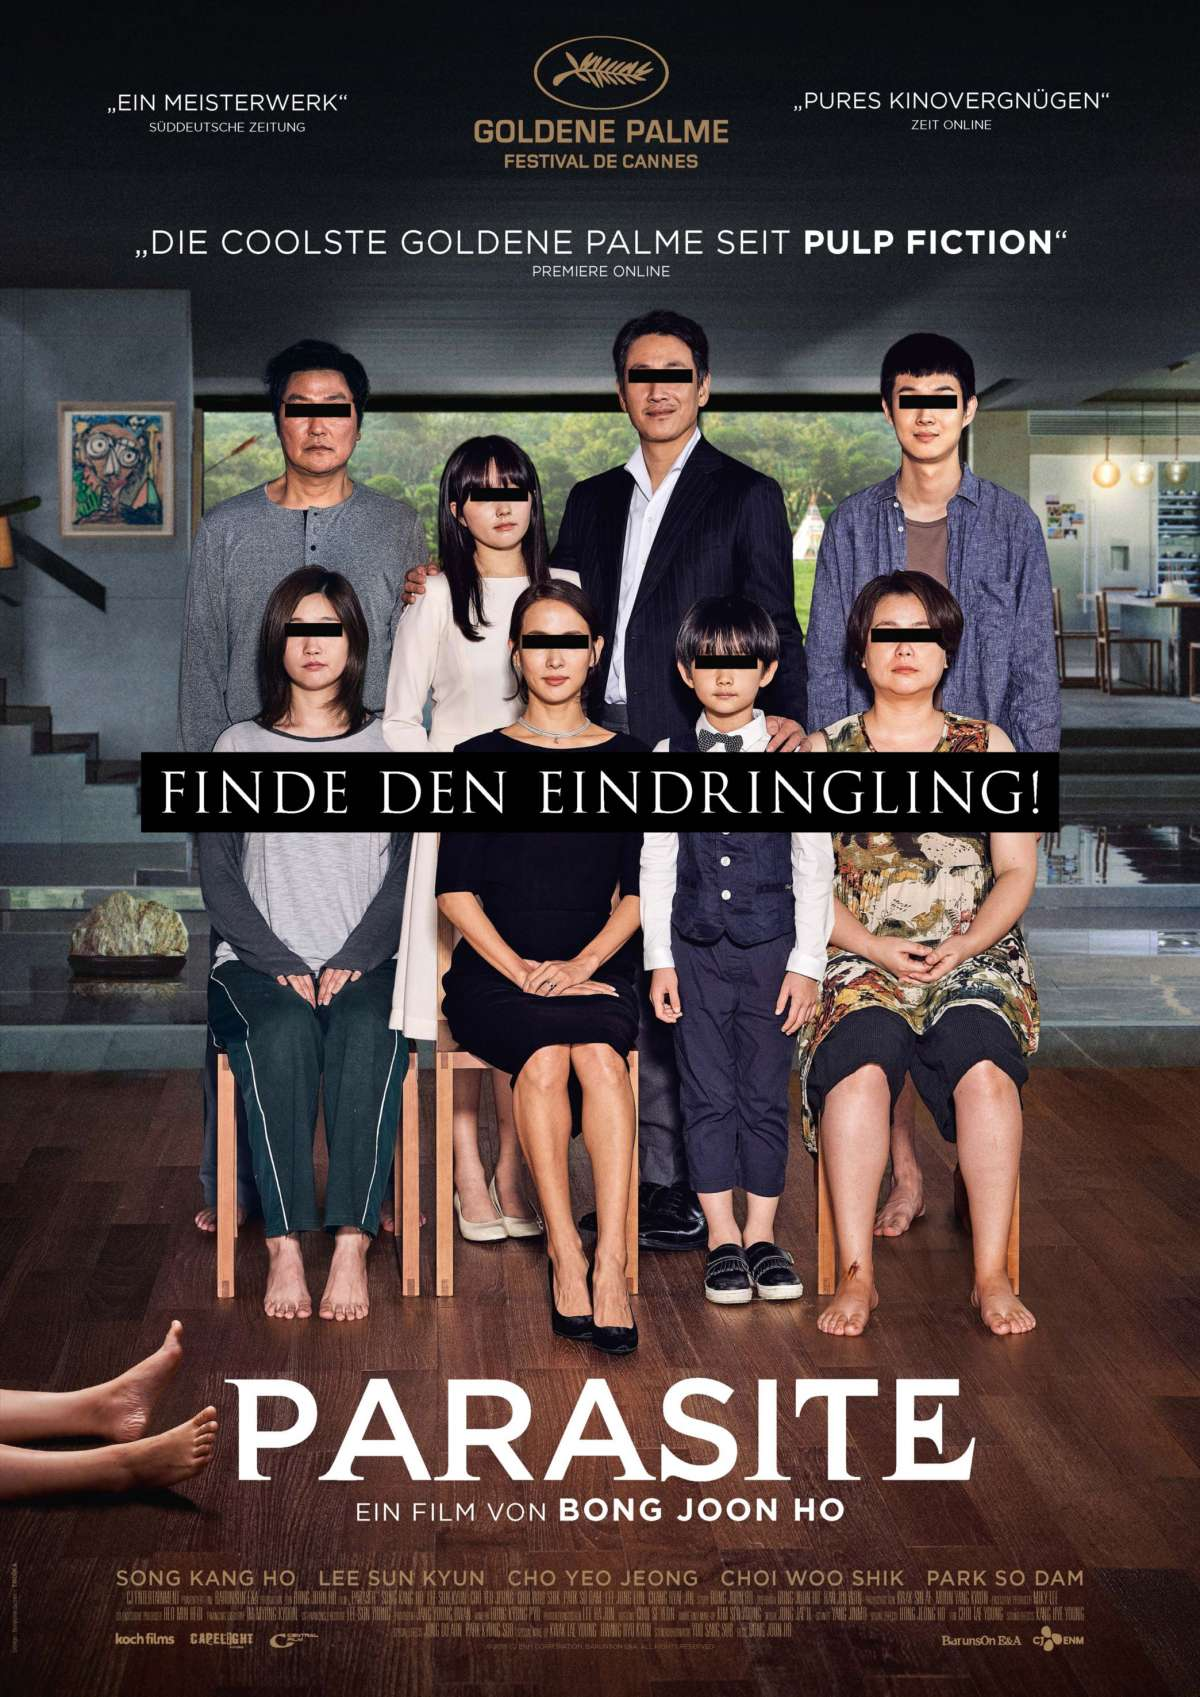 Parasite - BAC Theater - Bad Arolsen